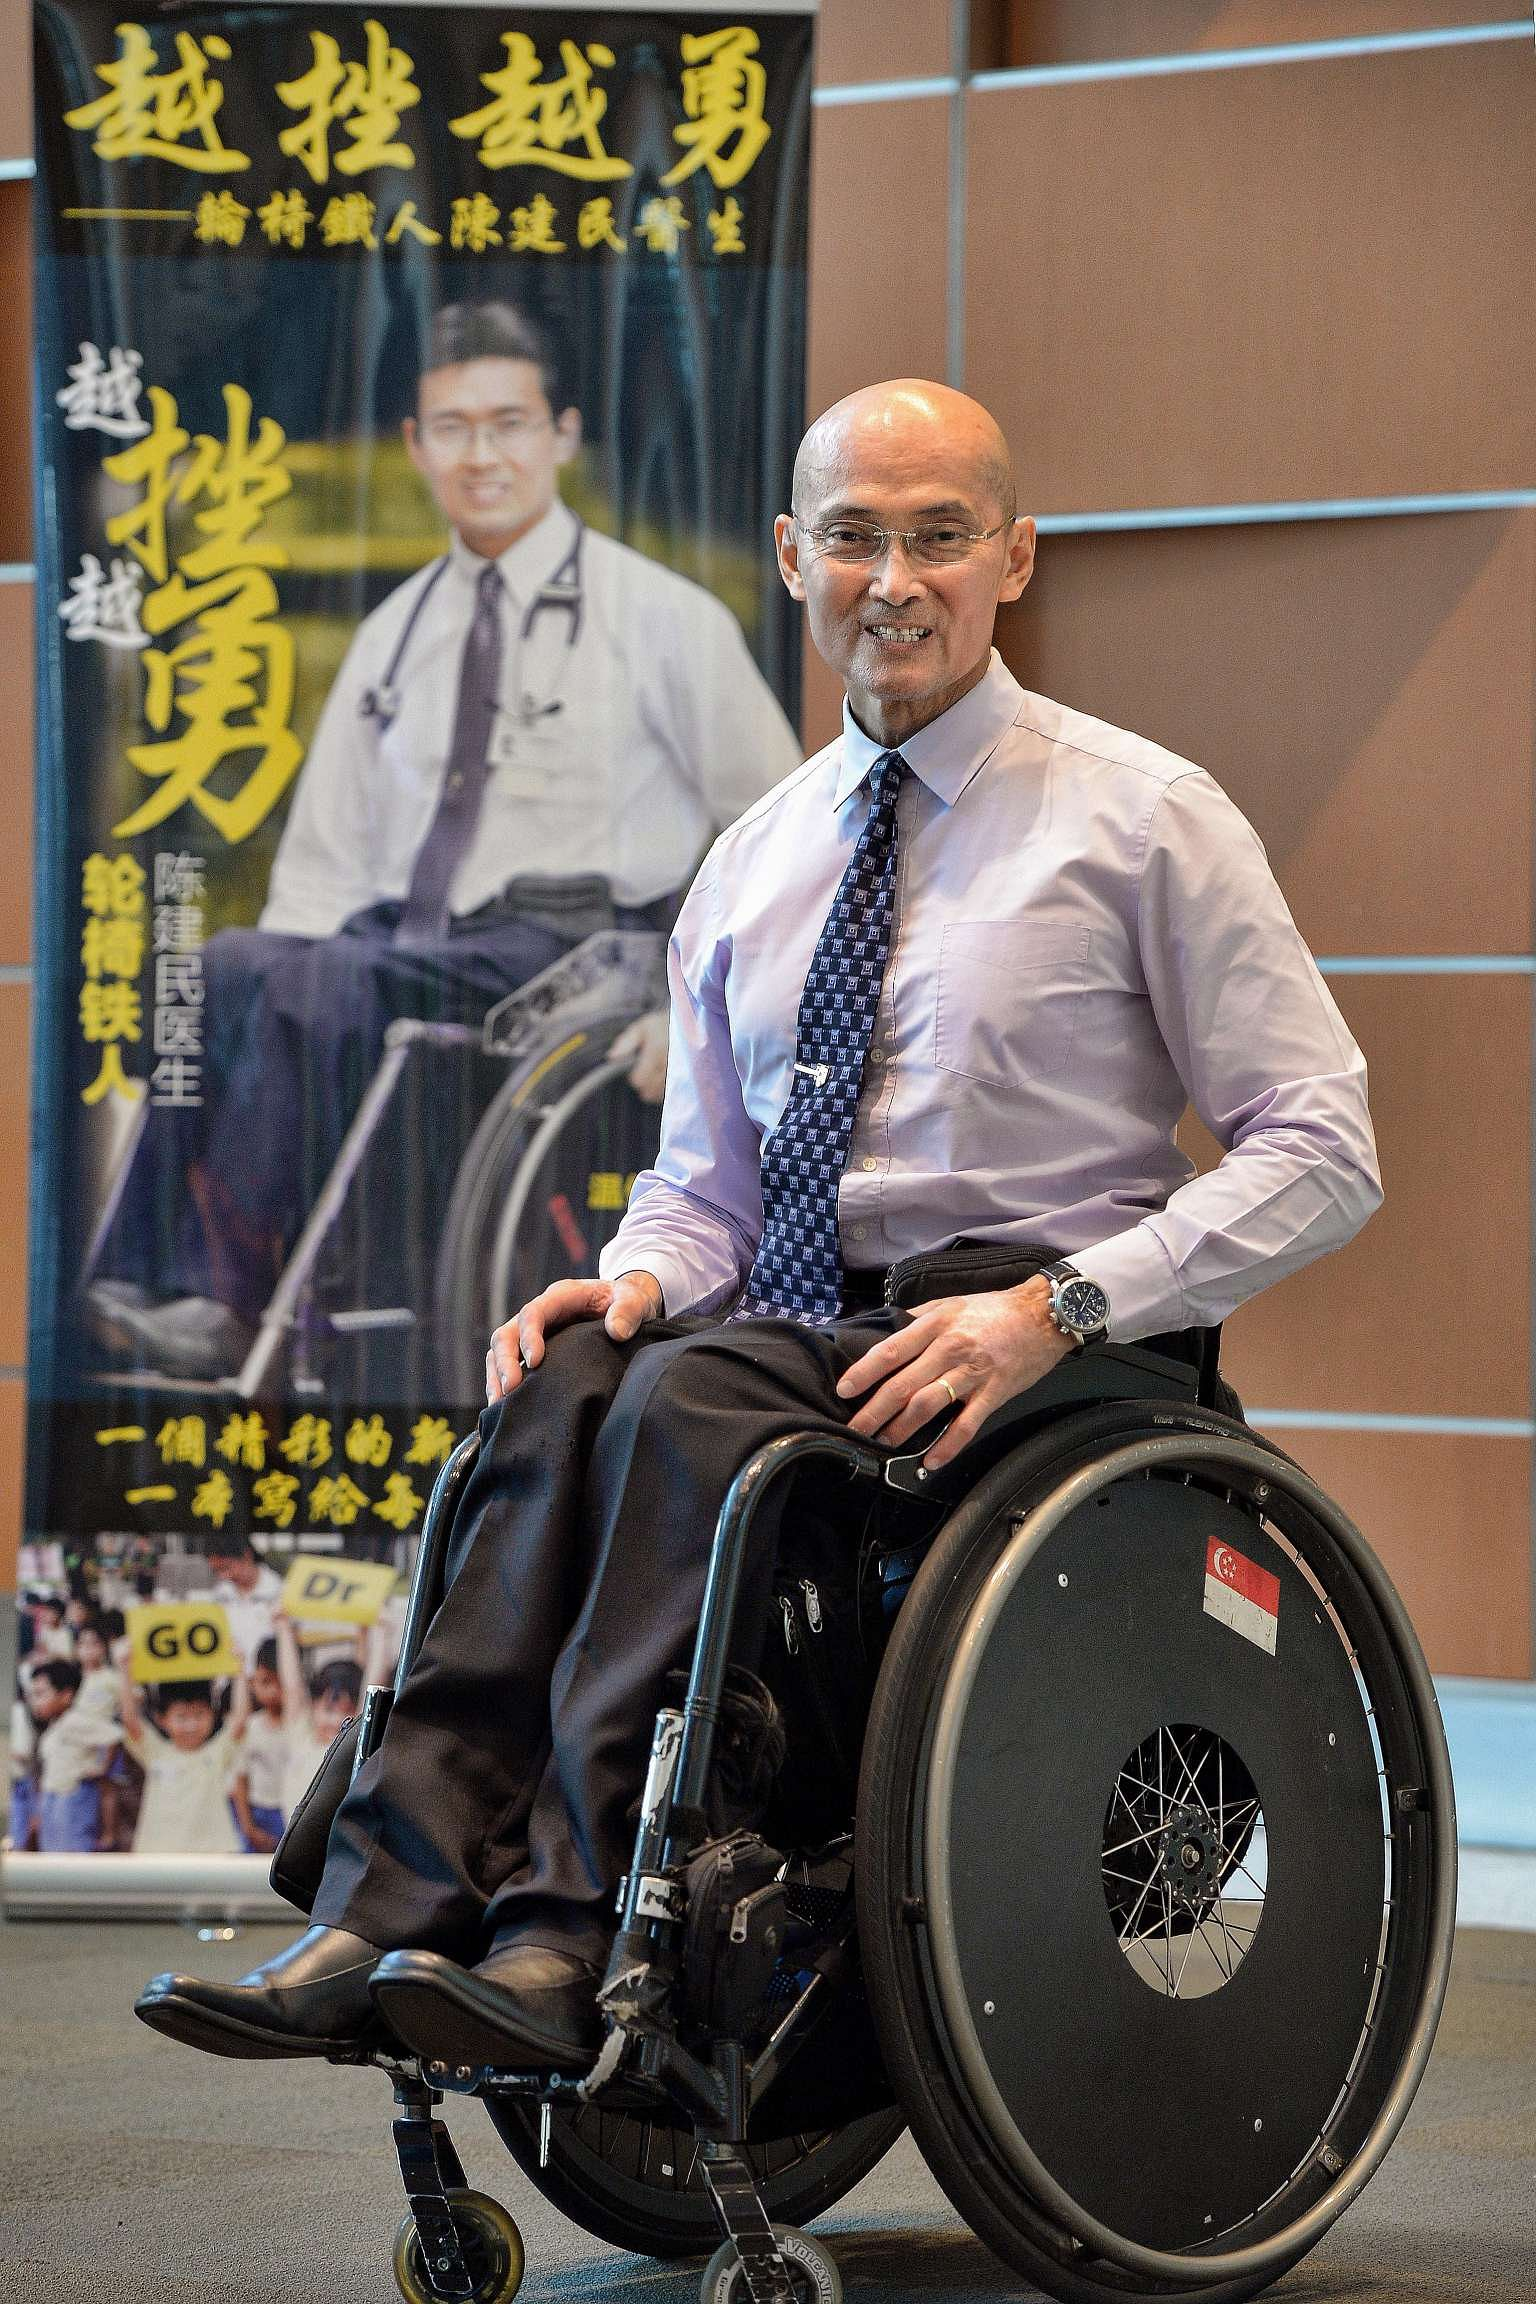 Dr Tan in front of a banner for his new Mandarin book More Challenges, More Vigour. Proceeds from the sales will go to charity.